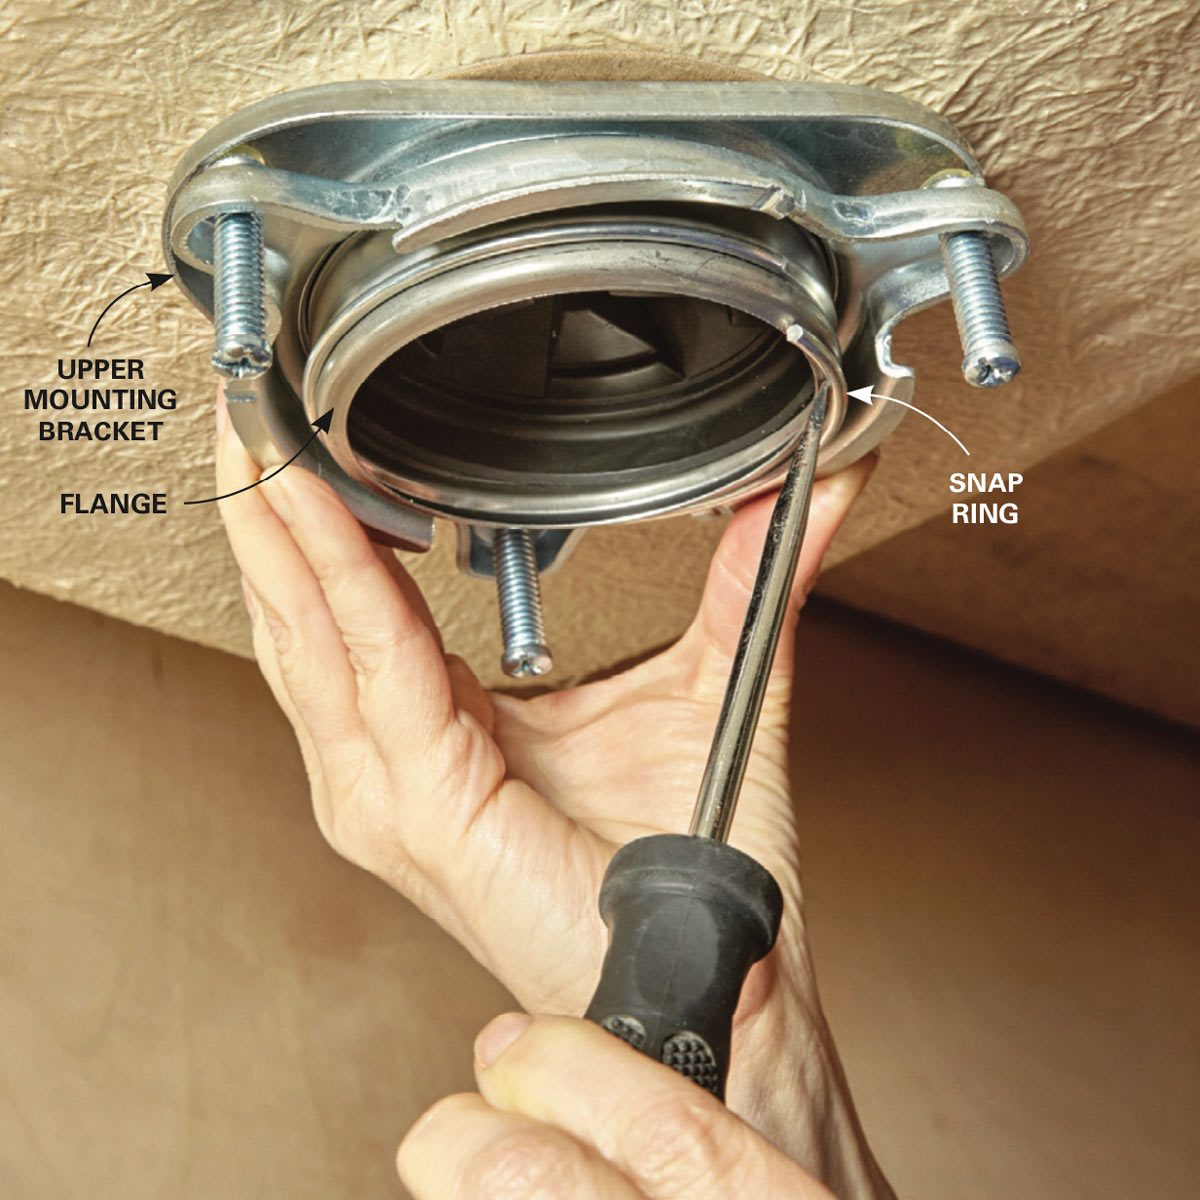 hight resolution of the snap ring fits into a groove on the lower end of the sink flange when you re working under the sink it prevents the upper mounting bracket from